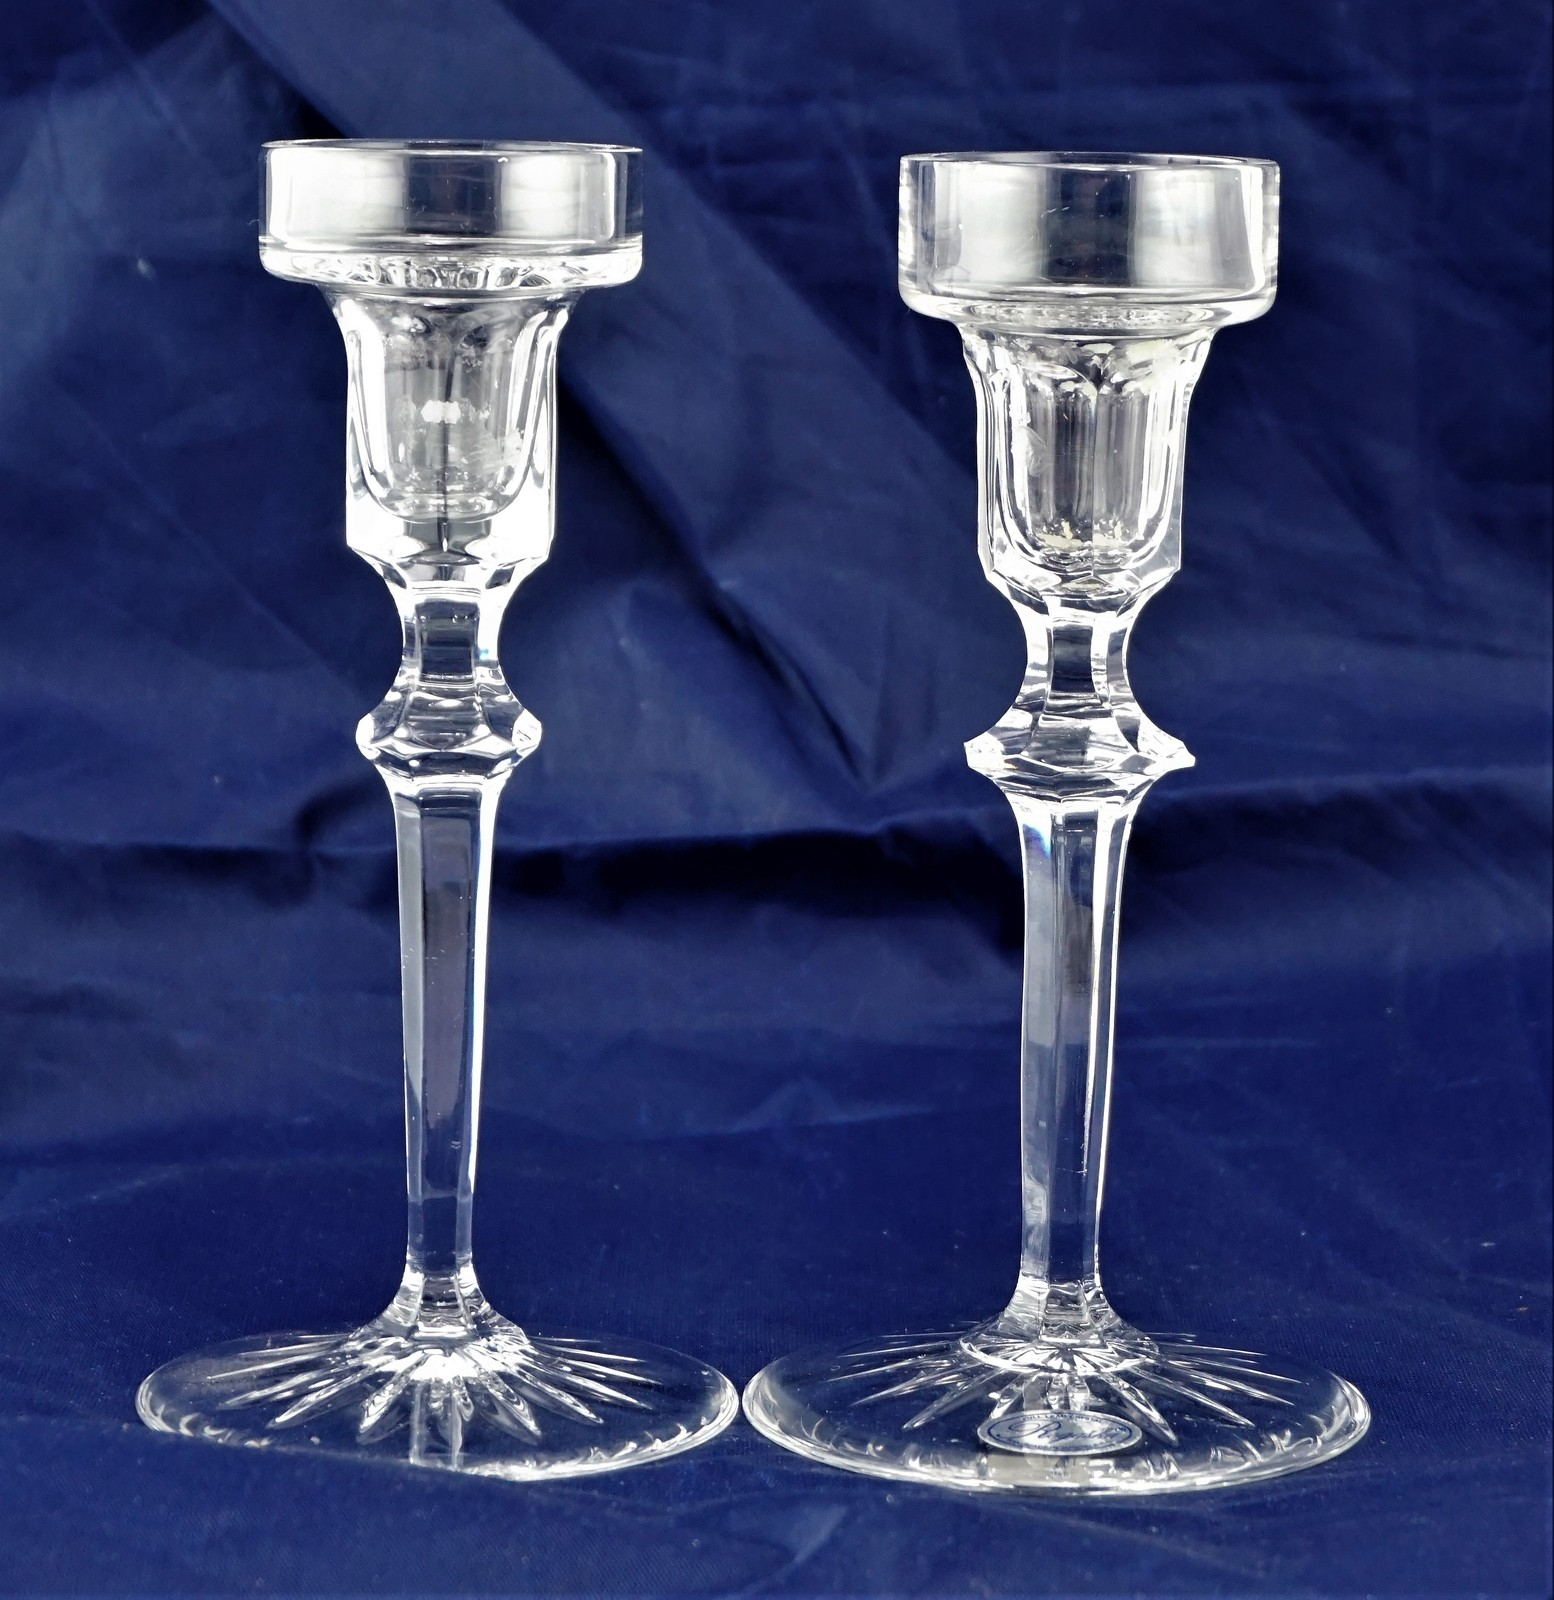 Primary image for THE ROYAL COLLECTION ROGASKA FULL LEAD CRYSTAL 2 CANDLE HOLDERS 6""